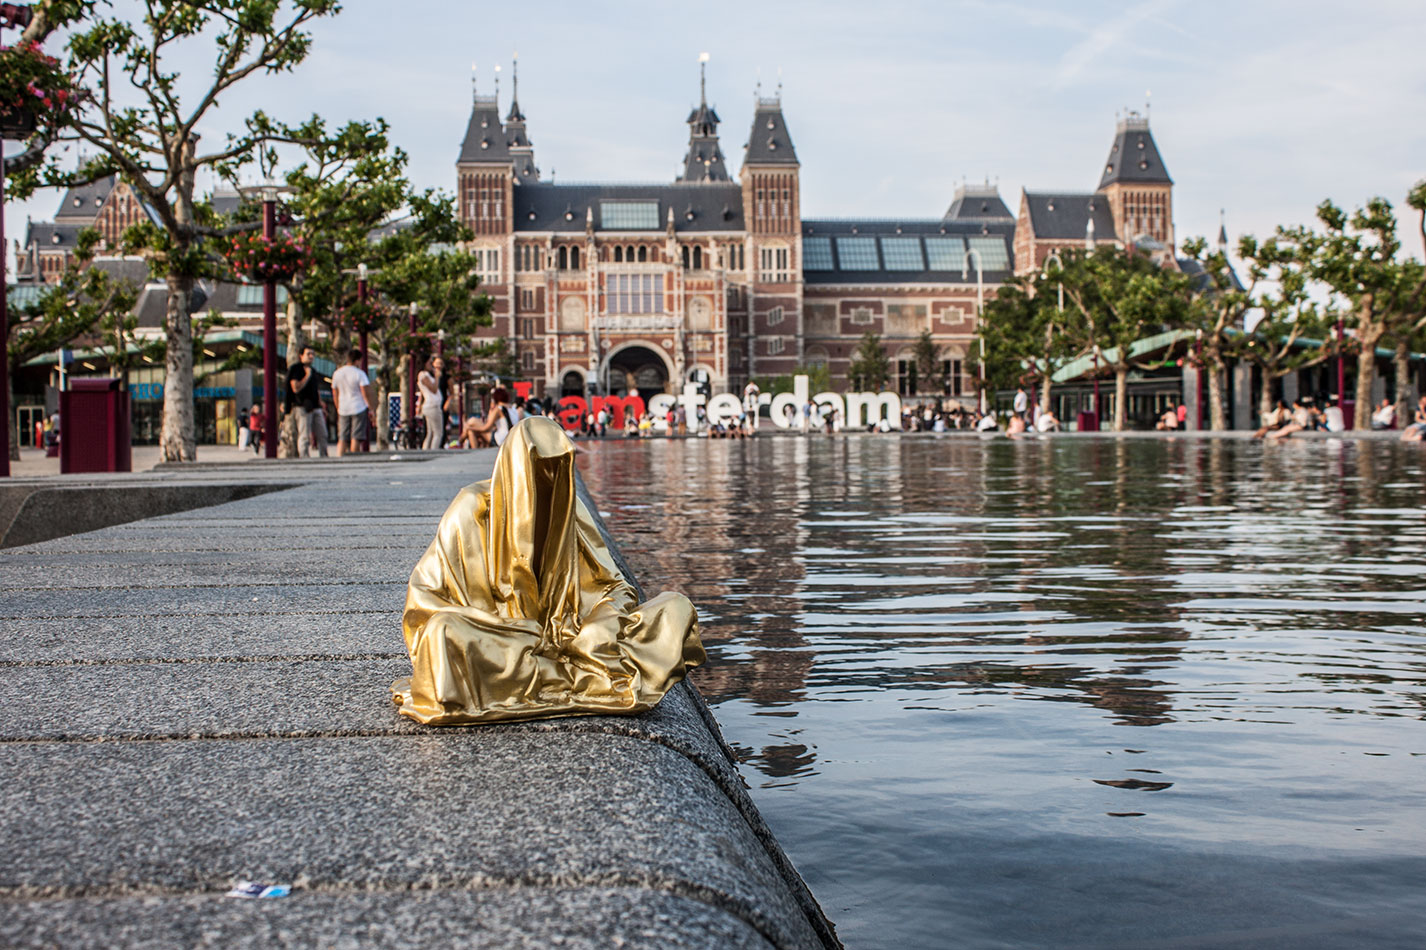 amstadam-netherlands-guardians-of-time-manfred-kielnhofer-public-modern-contemporary-art-fine-arts-sculpture-design-streat-art-2068